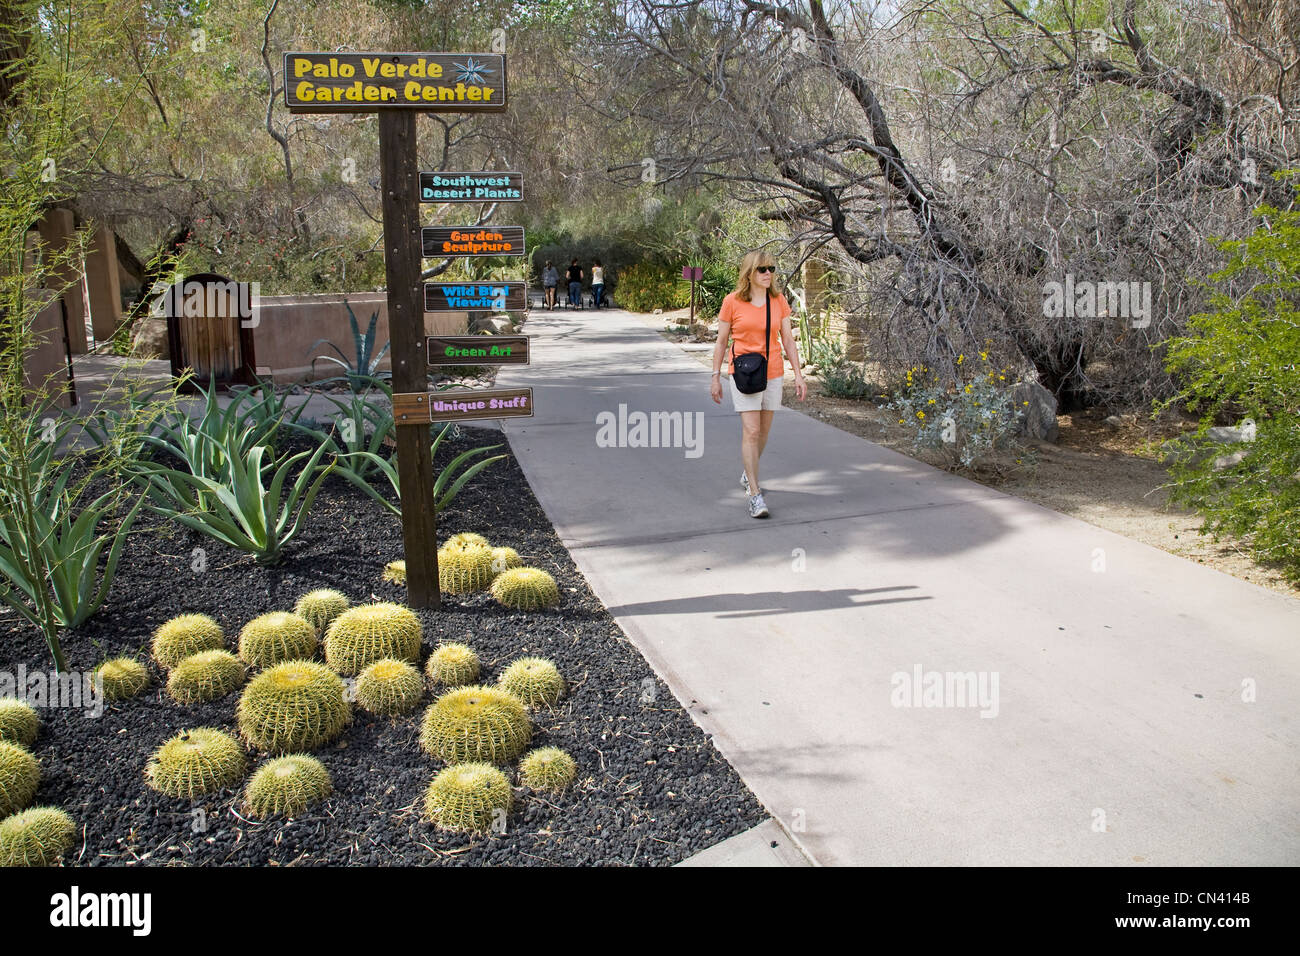 A Visitor Walks The Gardens At The Living Desert Zoo In Palm Springs,  California